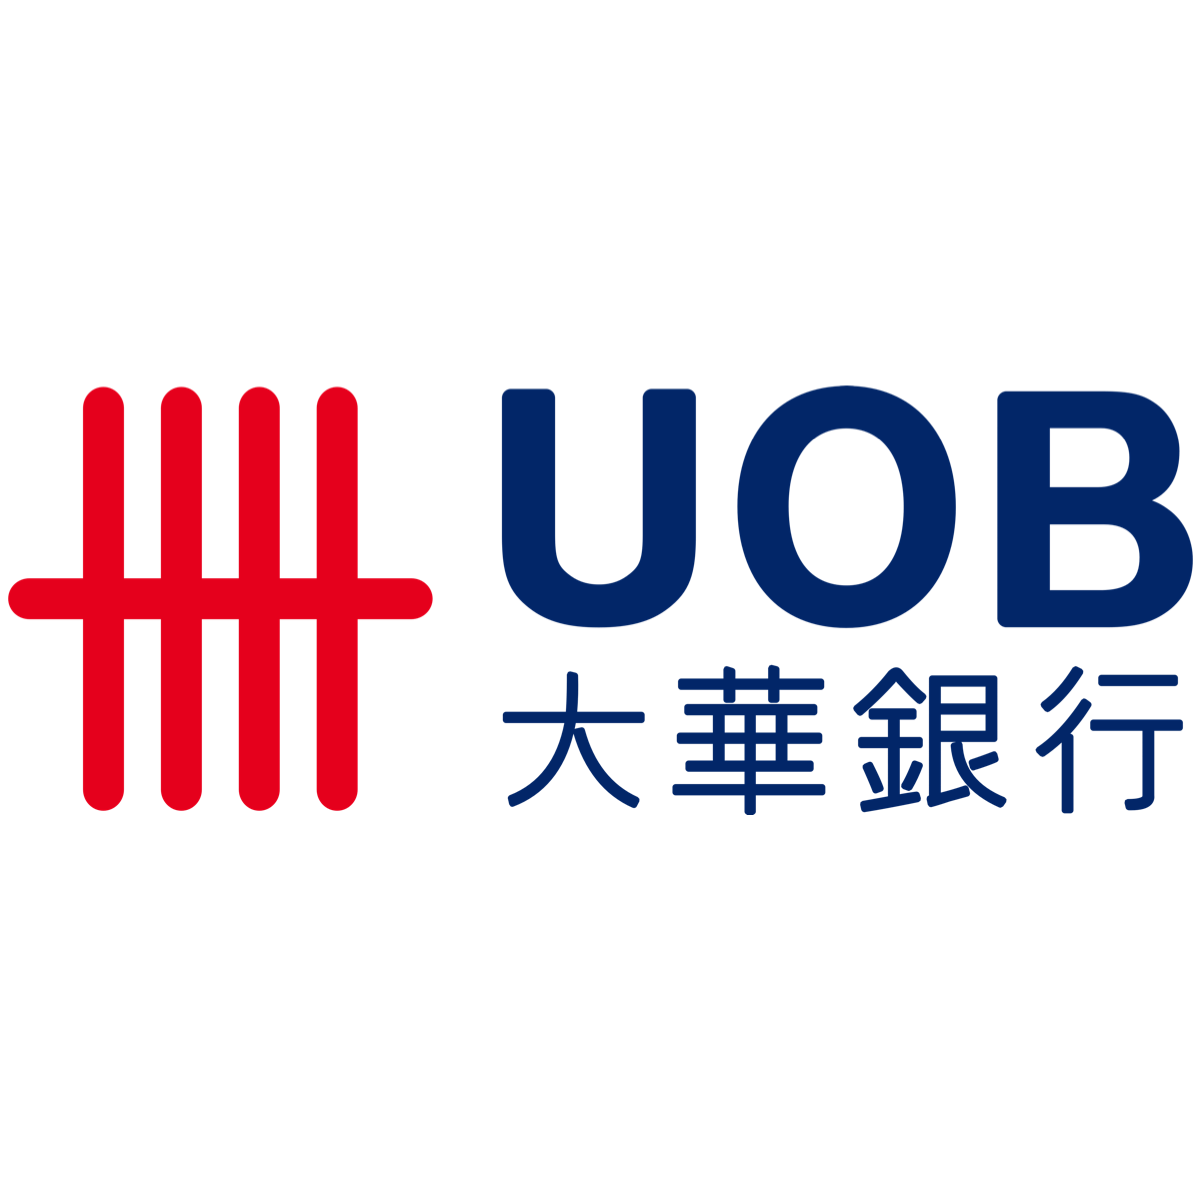 United Overseas Bank (UOB) - UOB Kay Hian 2018-05-04: 1Q18: Credit Costs Drop On Benign Credit Environment